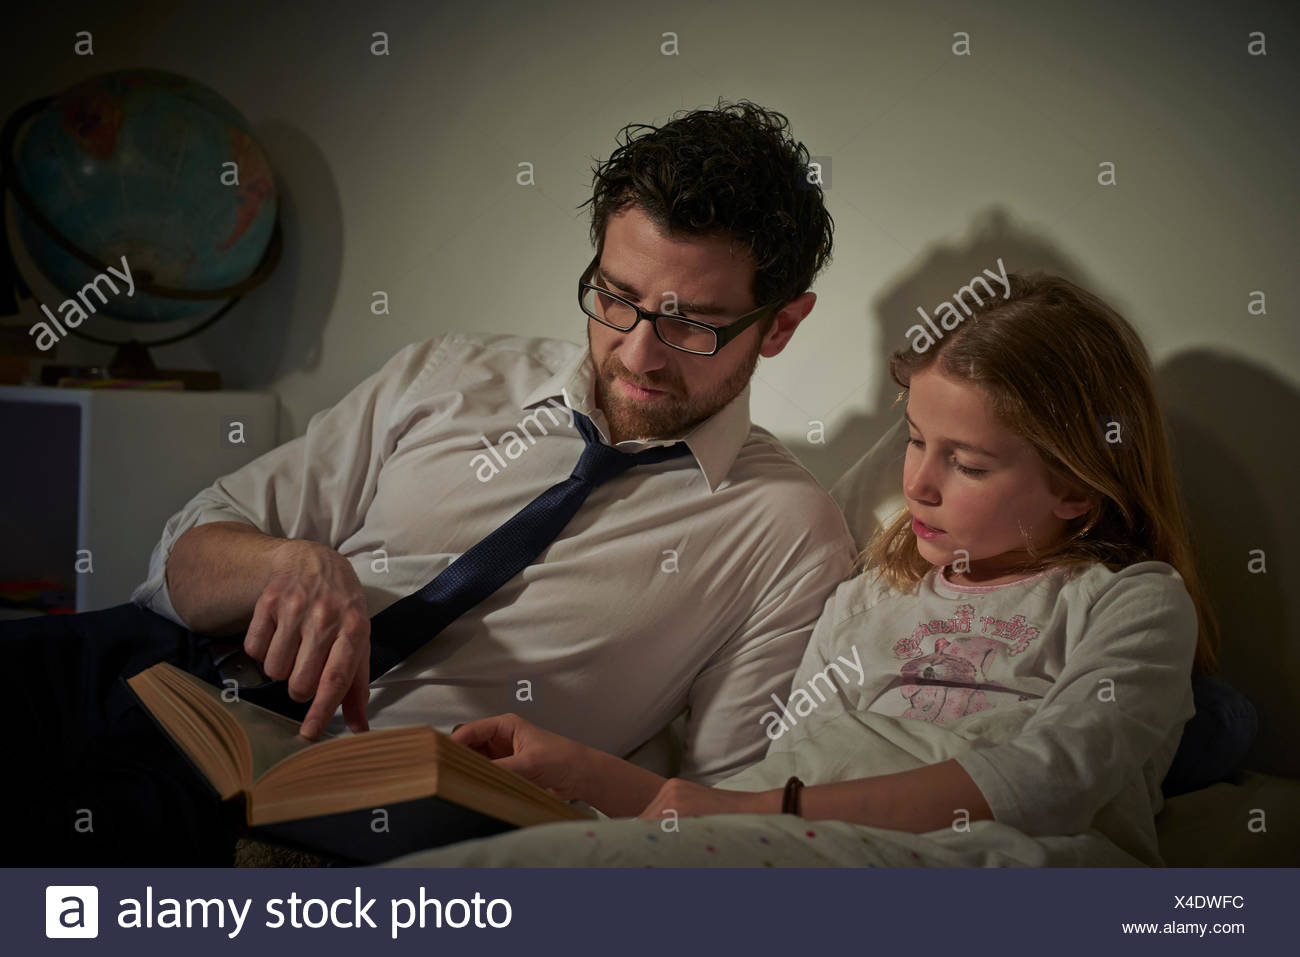 Businessman reading storybook to daughter at bedtime - Stock Image